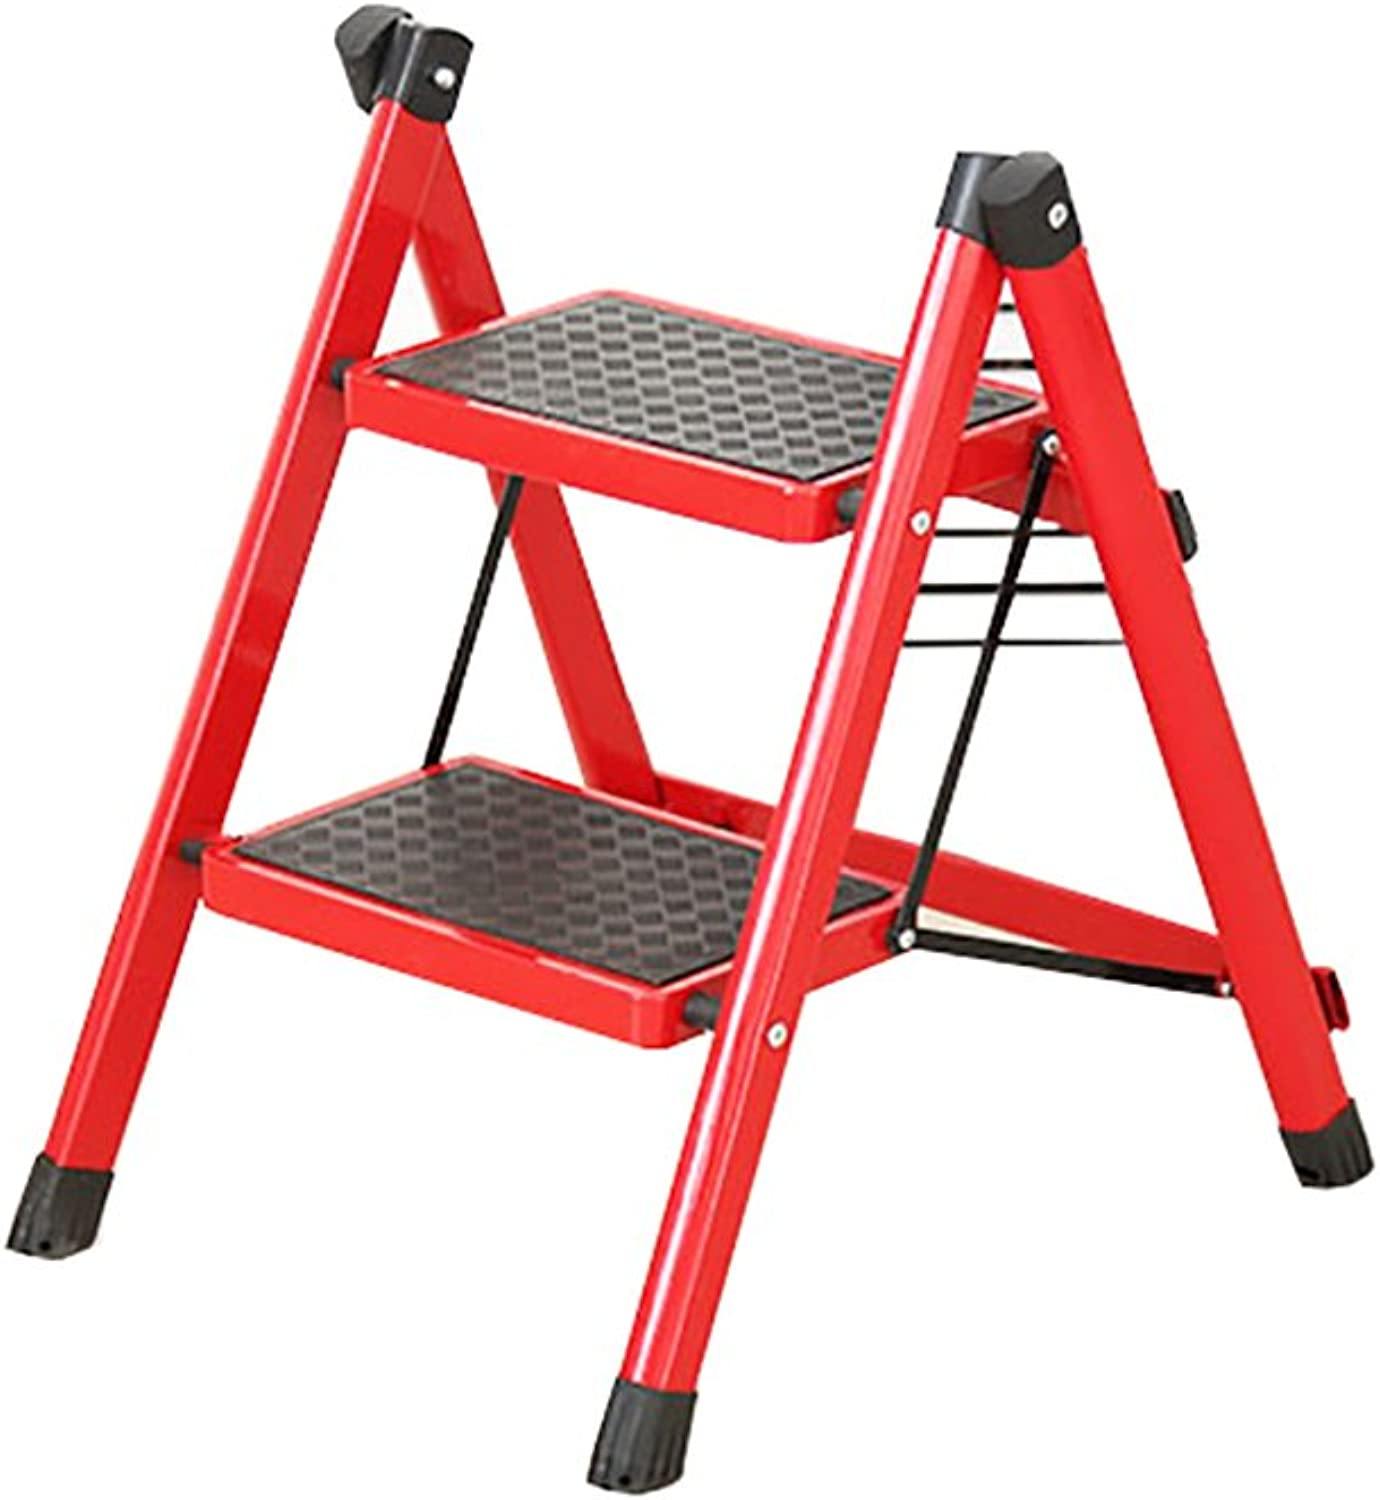 Folding Step Ladder with Handle and Non-Slip feet Home Folding Ladder Adult red Portable Folding Footstool   4 Size Options (Size   41  52  60cm)